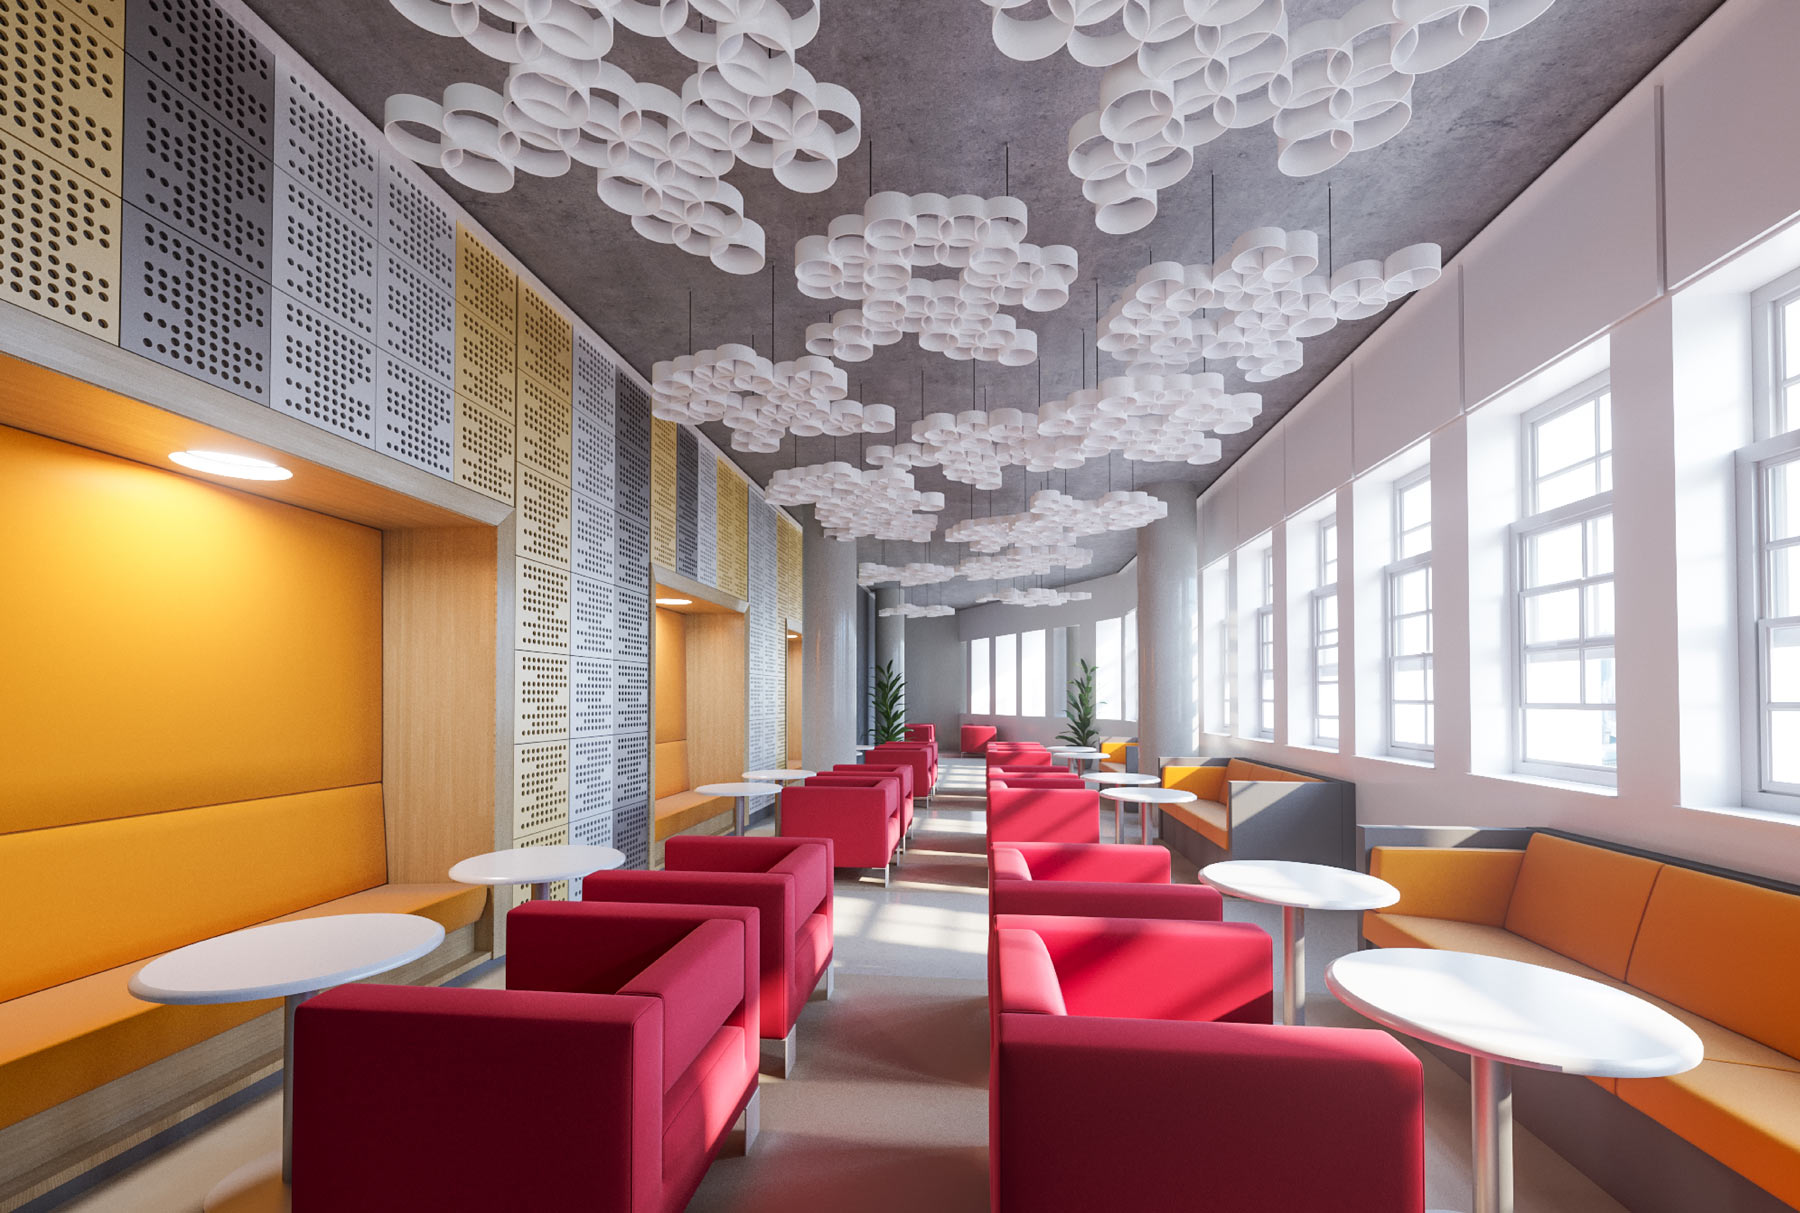 Sphera Modular Ceilings